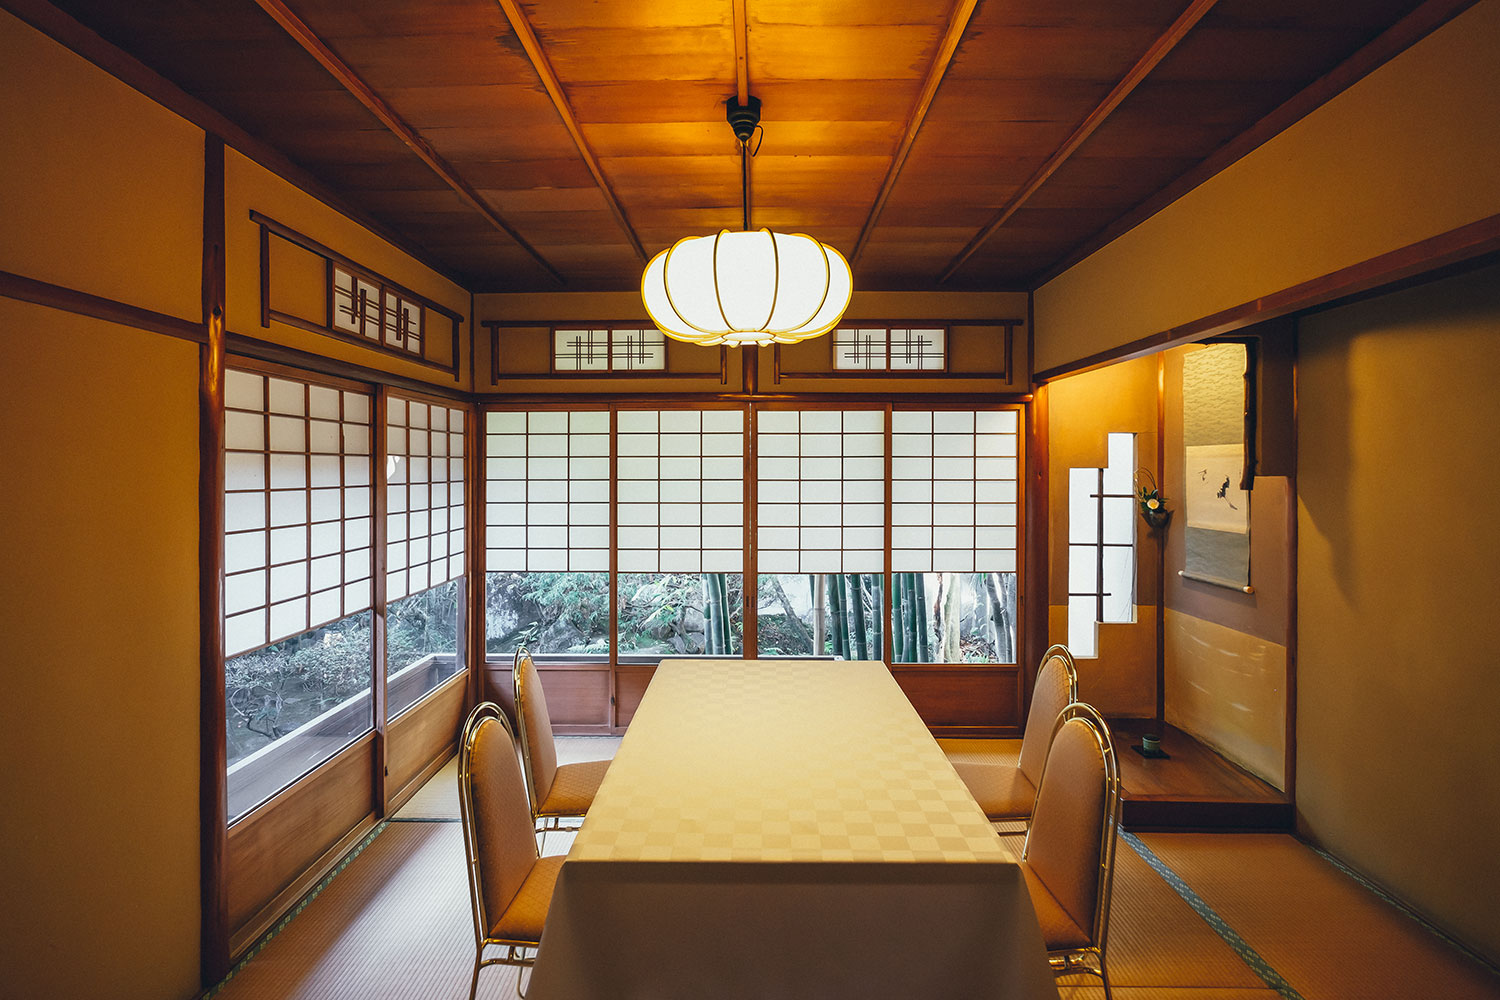 Tatami Room Making Use of Bamboo and Round Pillars